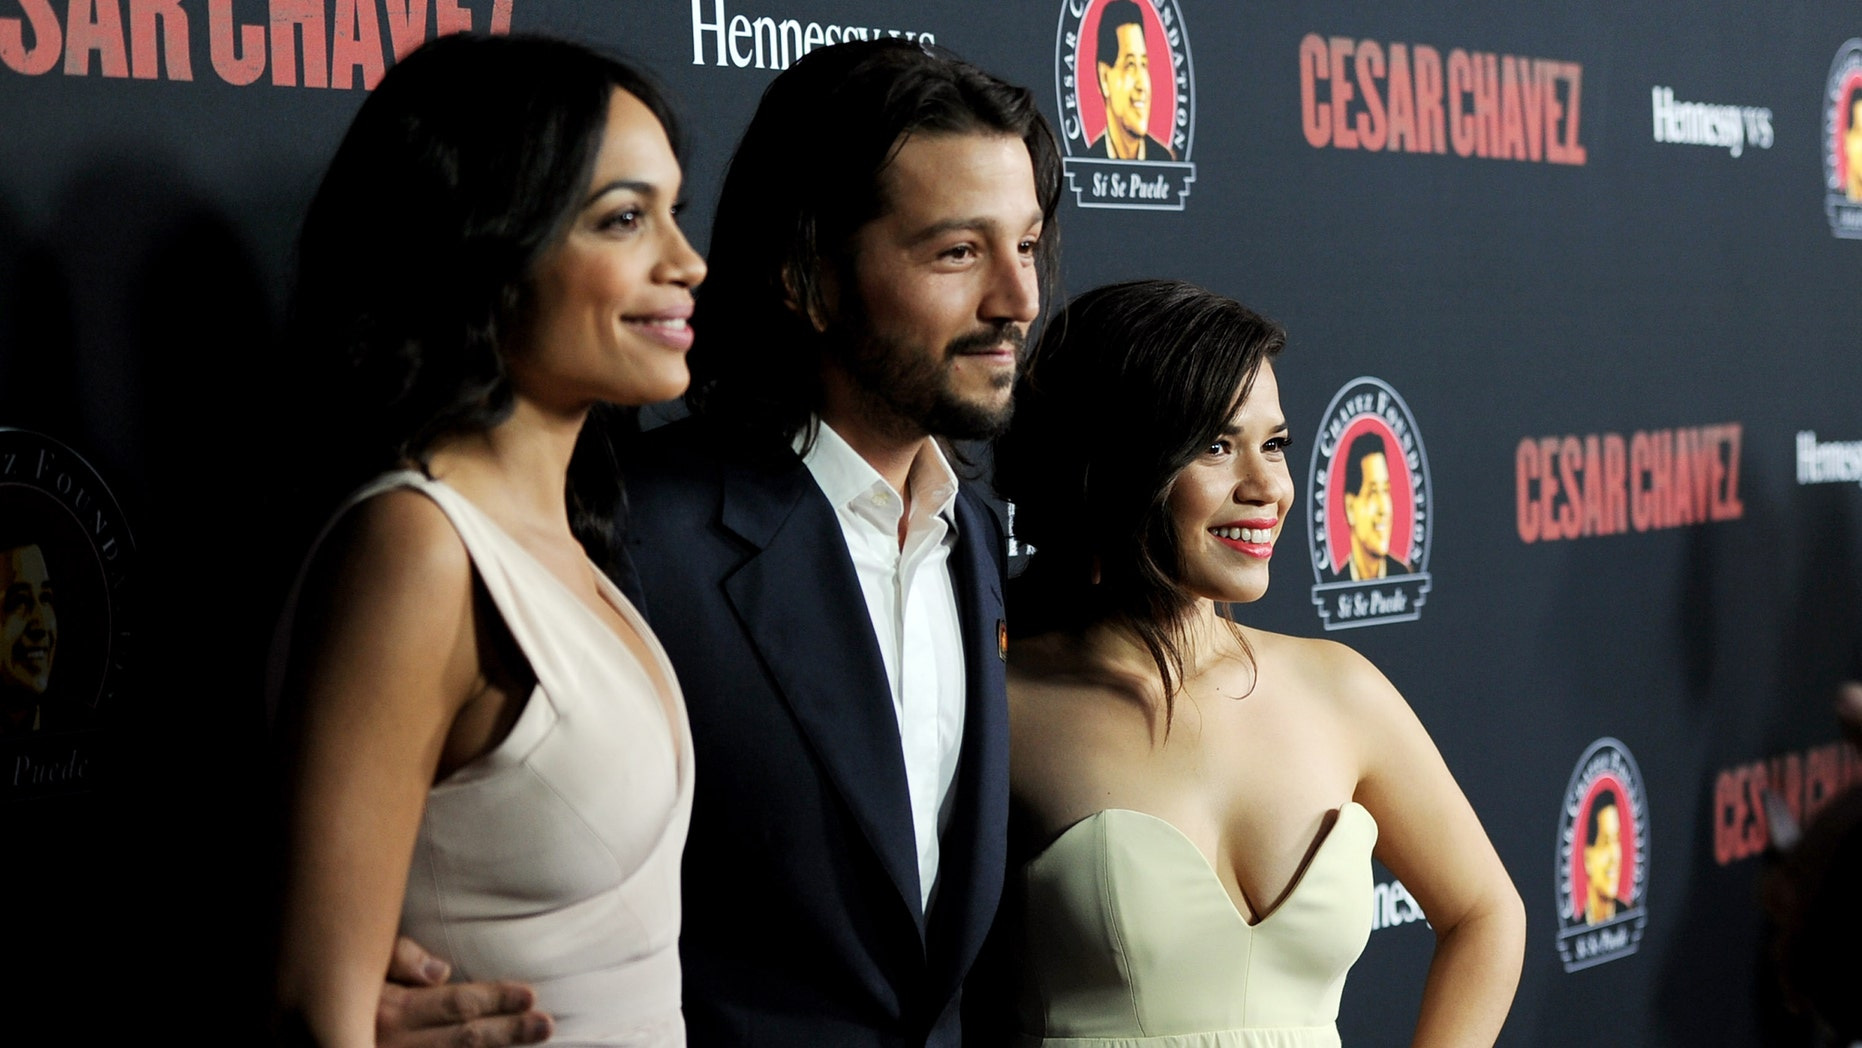 """LOS ANGELES, CA - MARCH 20:  (L-R) Actress Rosario Dawson, director Diego Luna and actress America Ferrera arrive at the premiere of Pantelion Films And Participant Media's """"Cesar Chavez"""" at the Chinese Theatre on March 20, 2014 in Los Angeles, California.  (Photo by Kevin Winter/Getty Images)"""